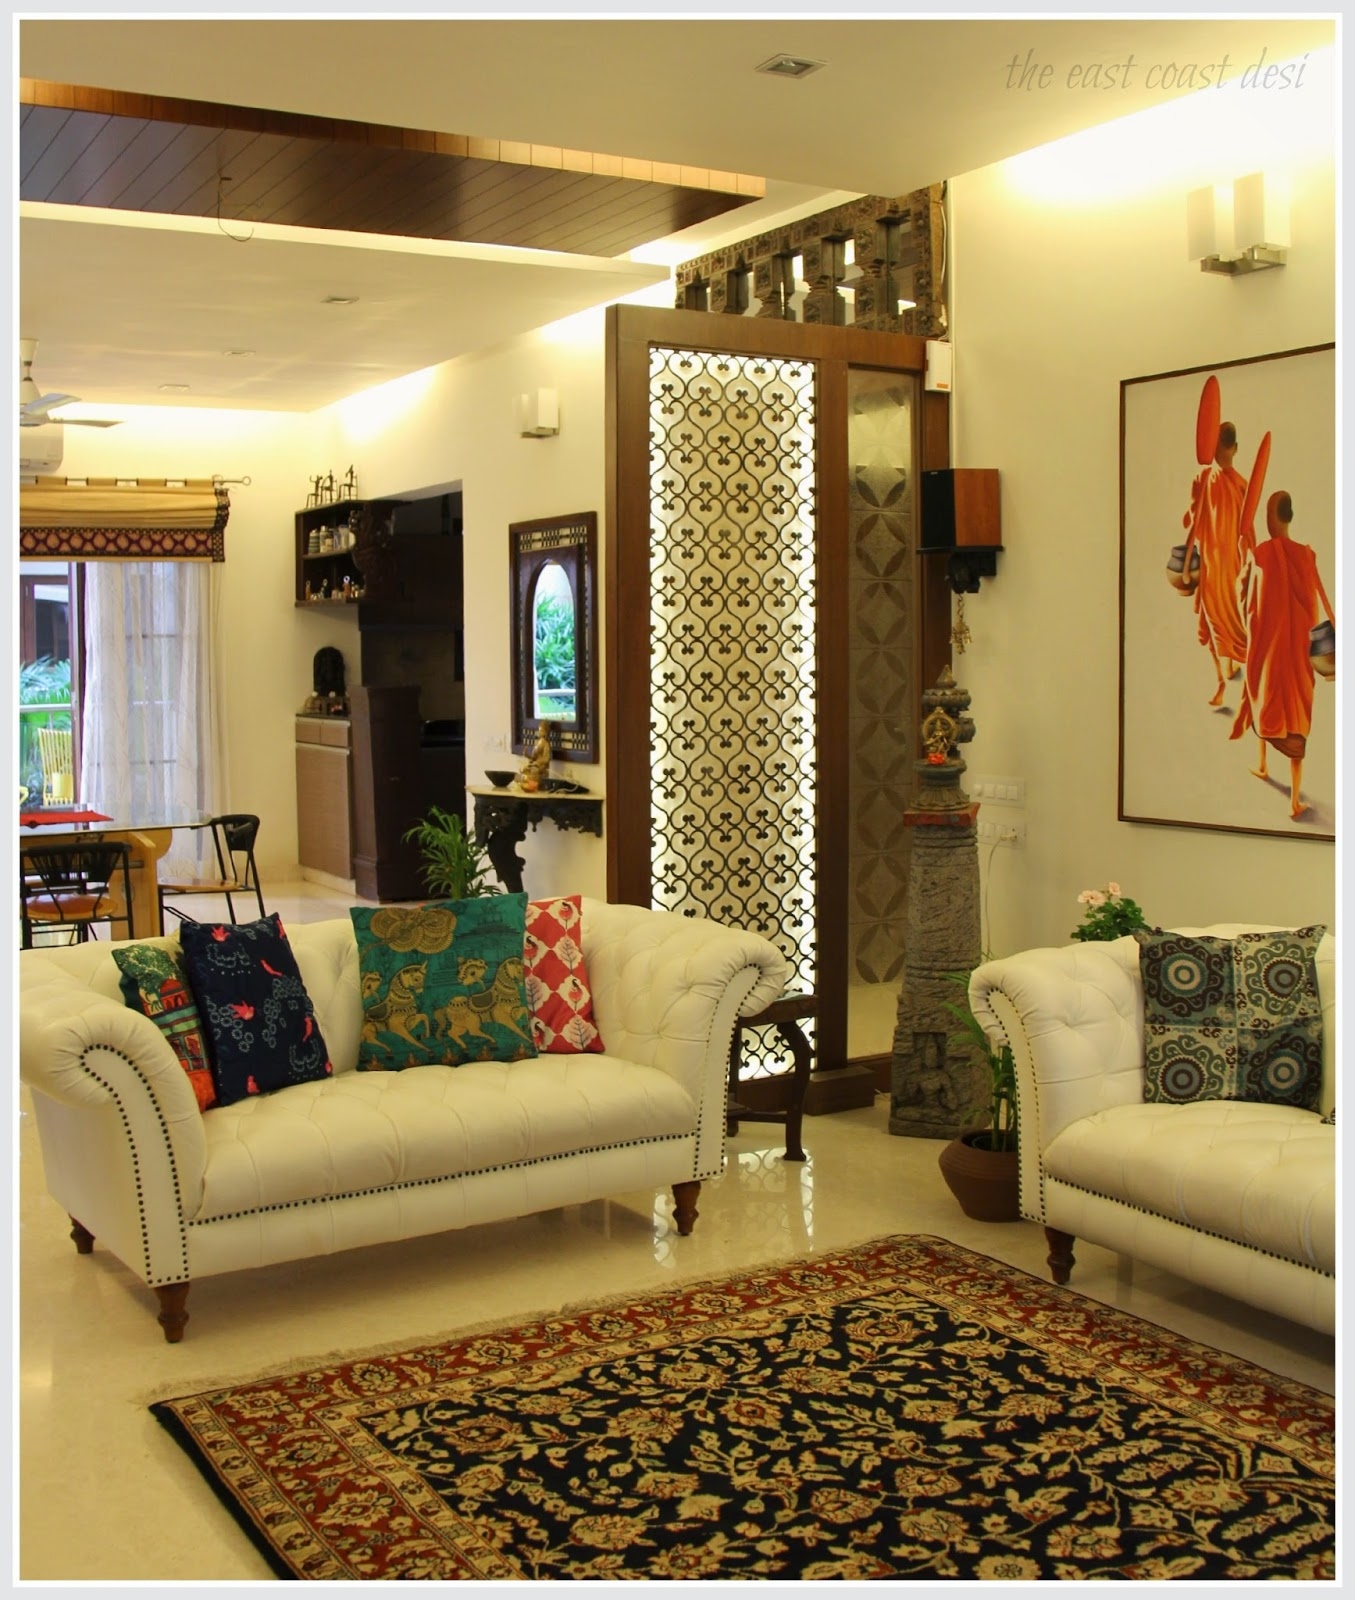 The east coast desi masterful mixing home tour for Indian home interior living room